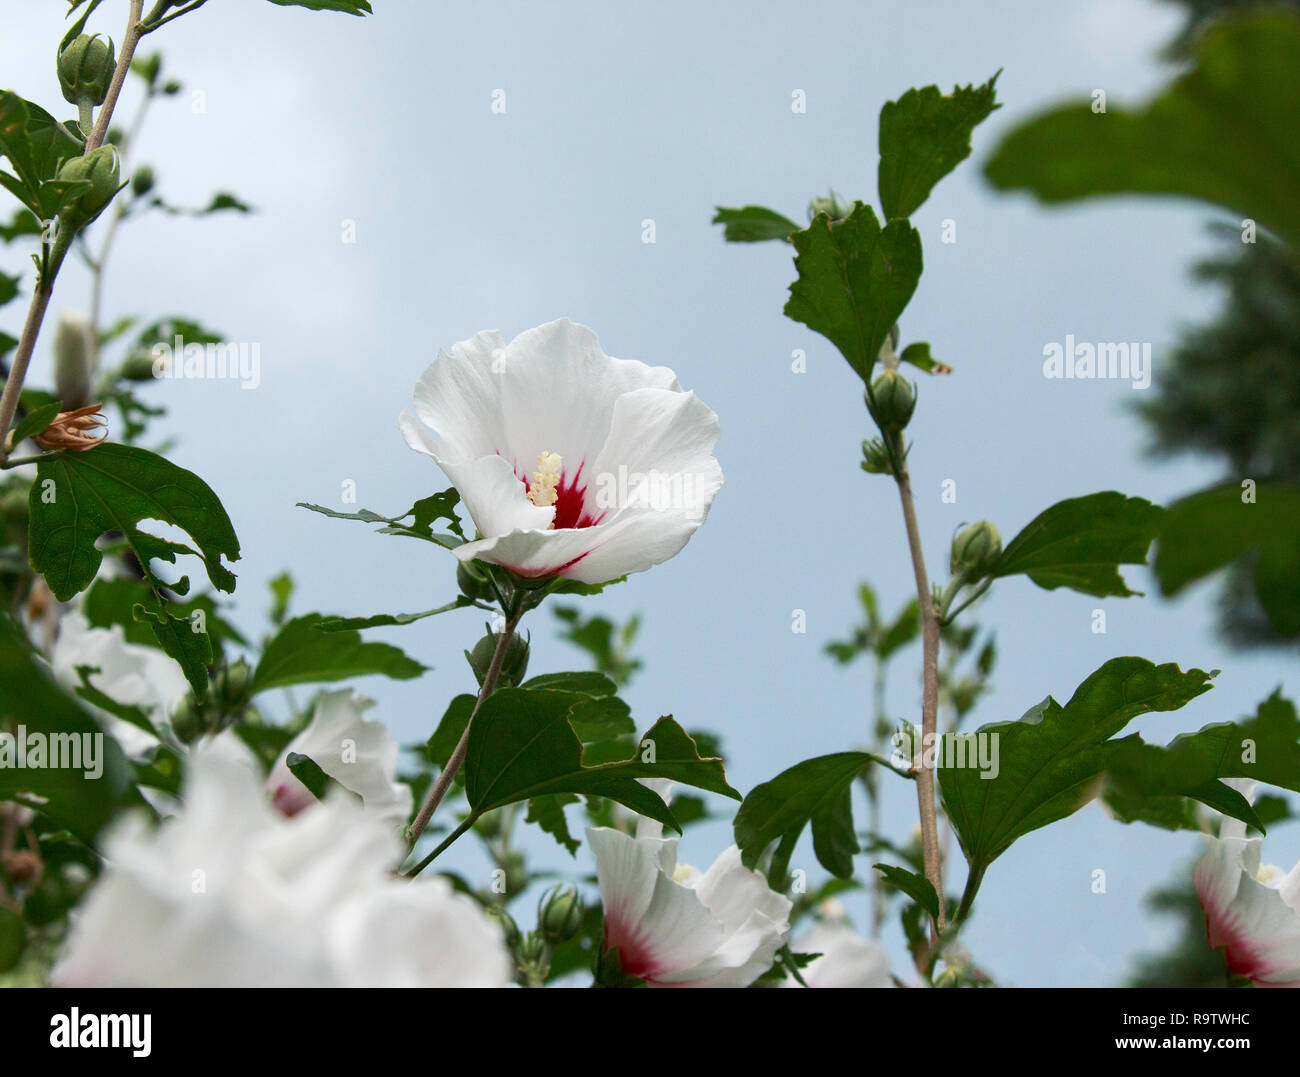 Hardy Hibiscus Tree Stock Photos Hardy Hibiscus Tree Stock Images